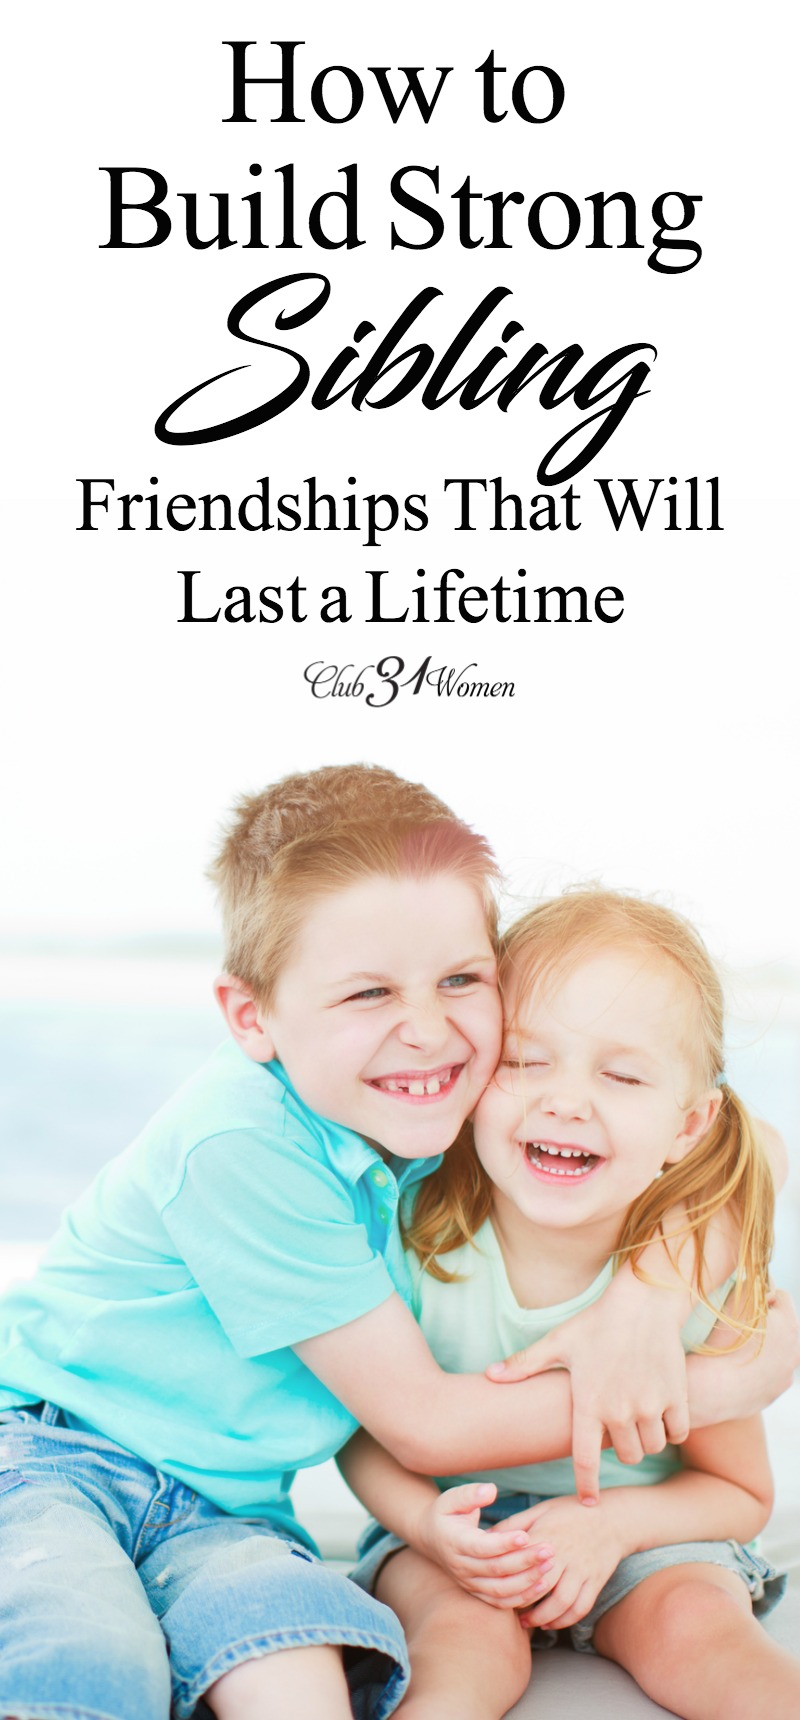 How can we cultivate sibling friendships in our children as they begin learning about conflicting desires? Here are some great ways to begin when they are young.